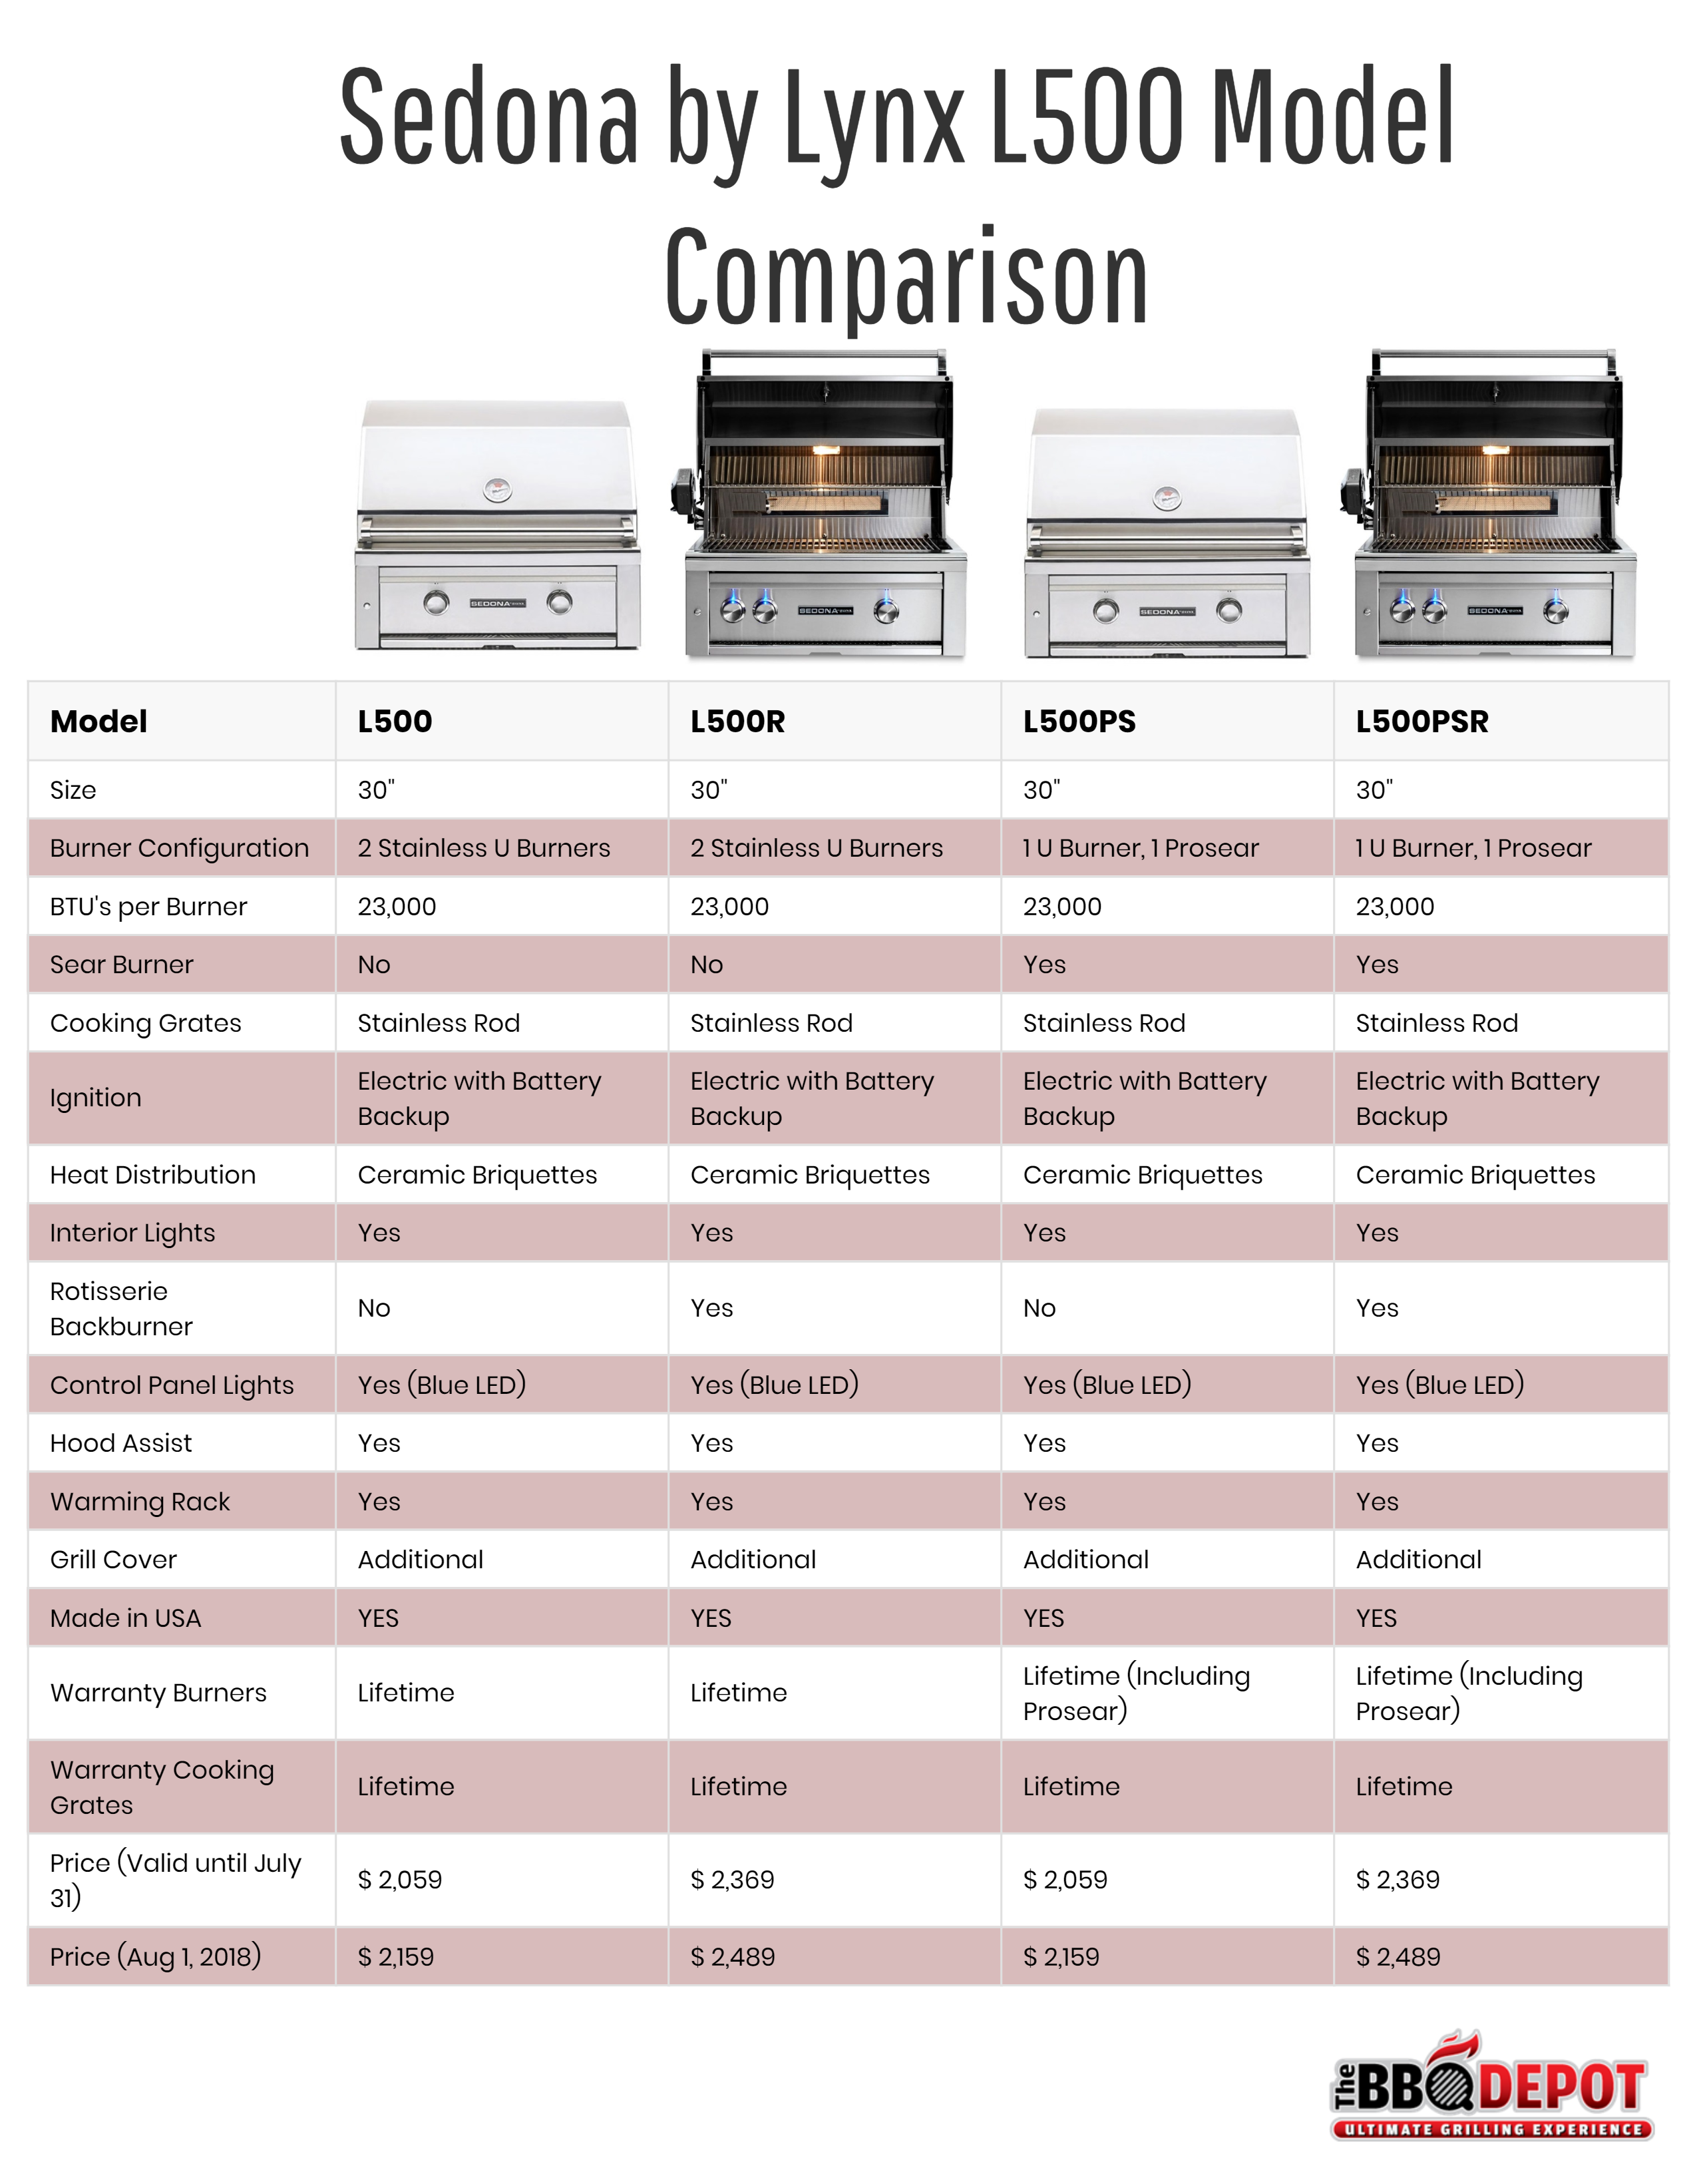 Sedona by Lynx L500 Model Comparison